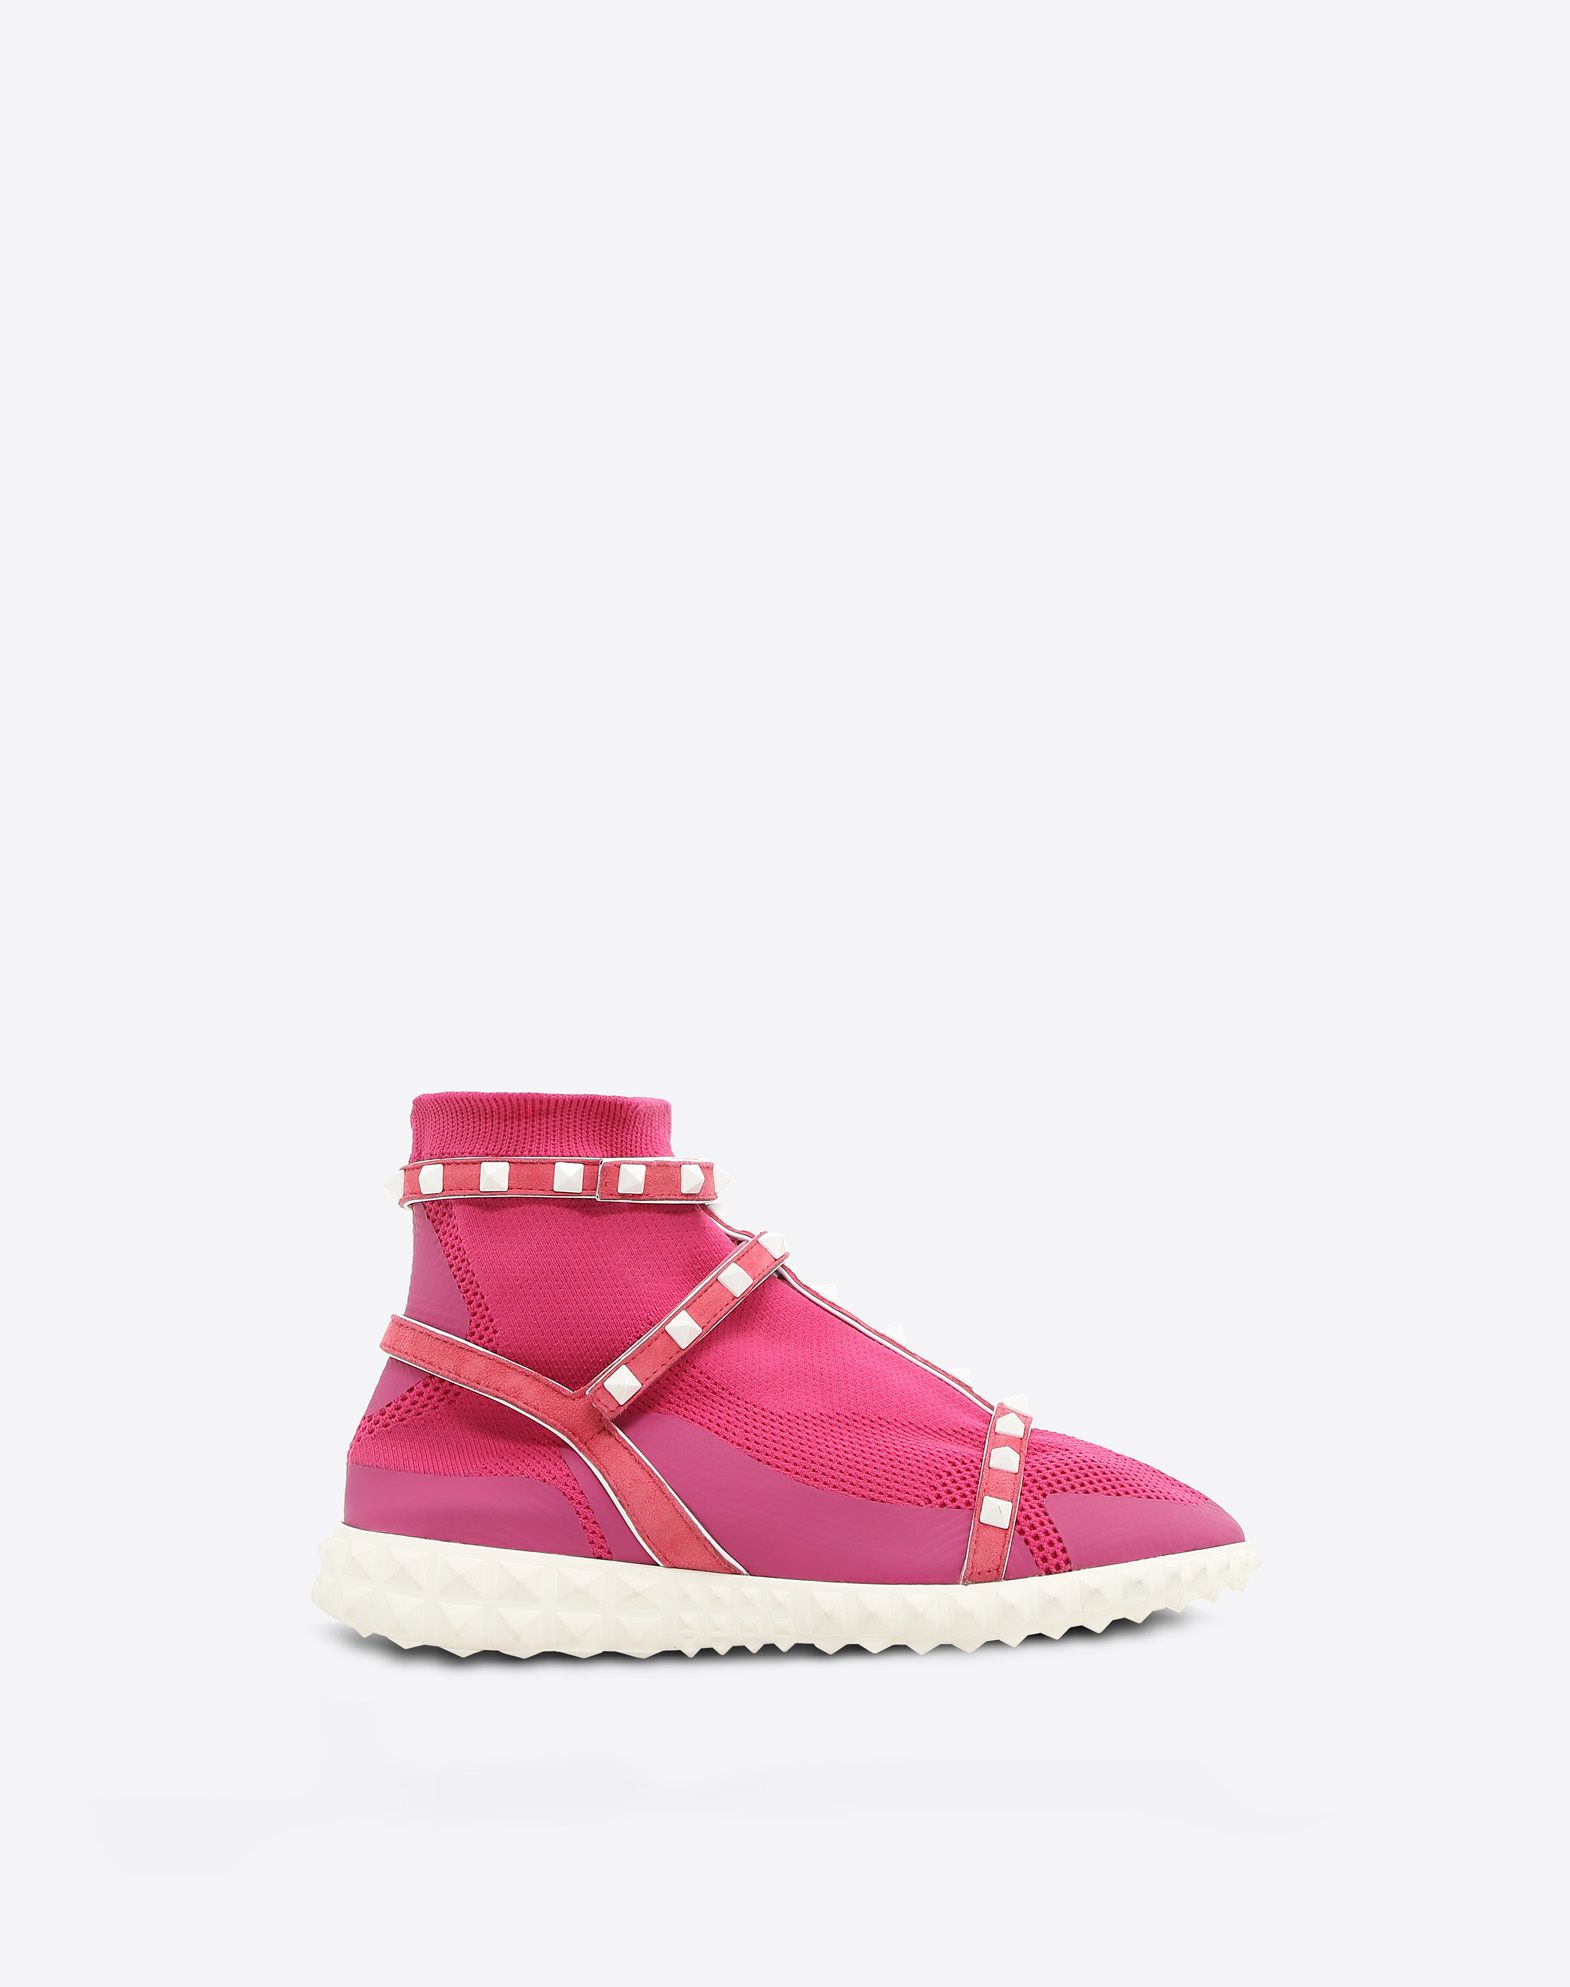 VALENTINO Knitted Studded Suede effect Round toeline Velcro closure Flat Rubber sole Logo  11357975sd